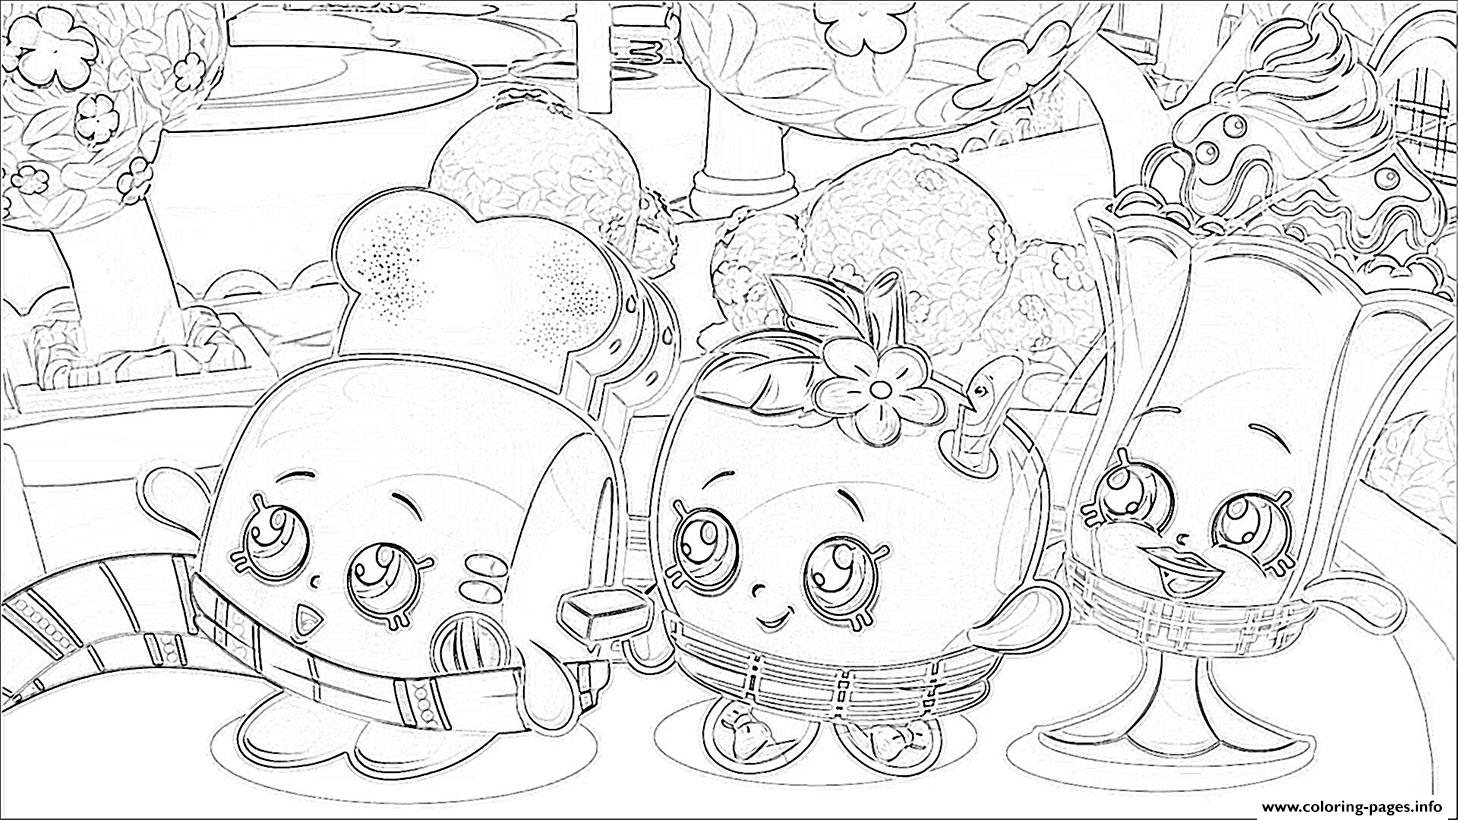 shopkins season 2 episode 3 coloring pages